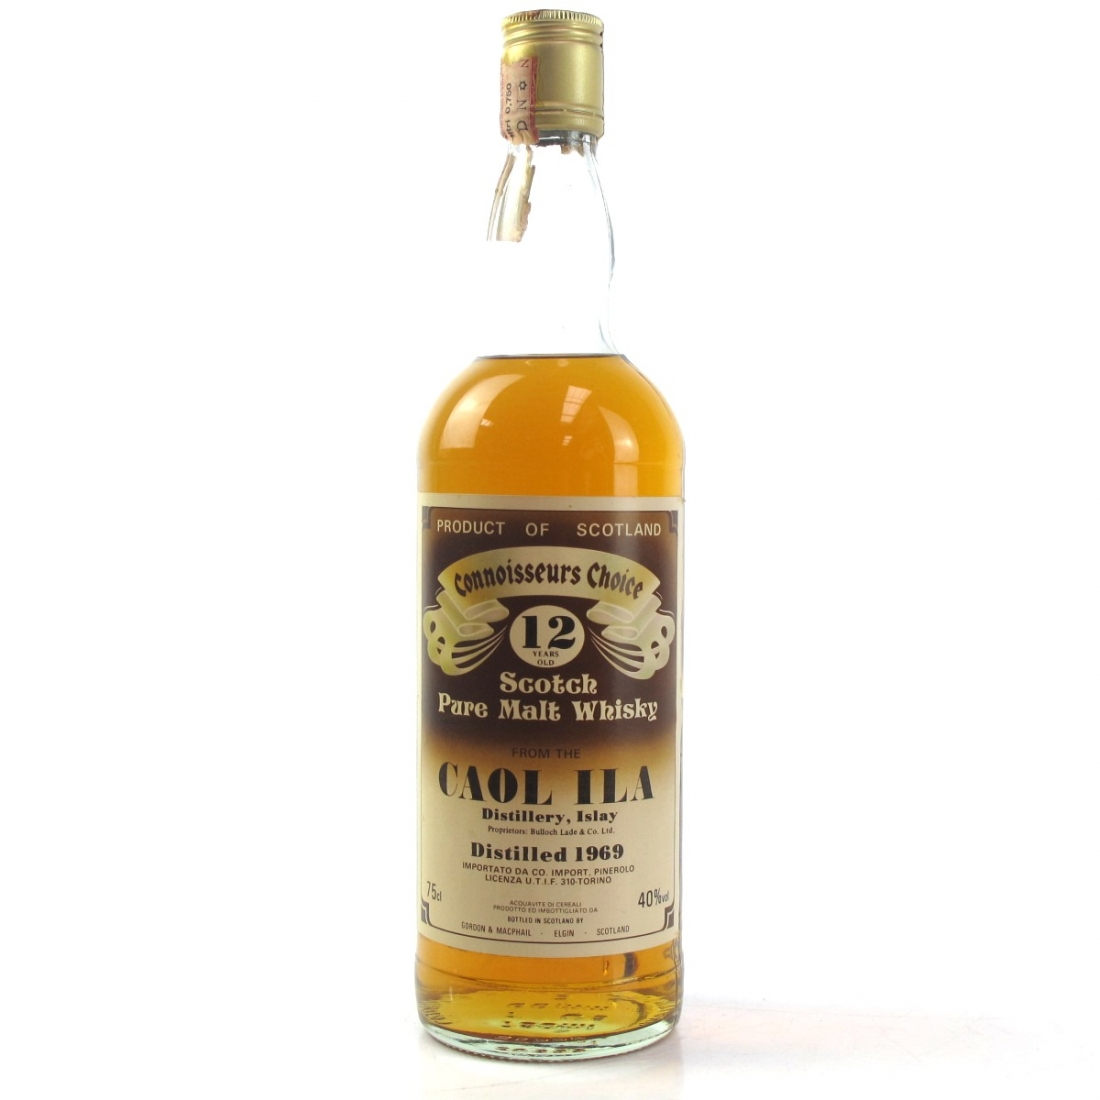 Caol Ila 1969 Gordon and MacPhail 12 Year Old / Pinerolo Imports